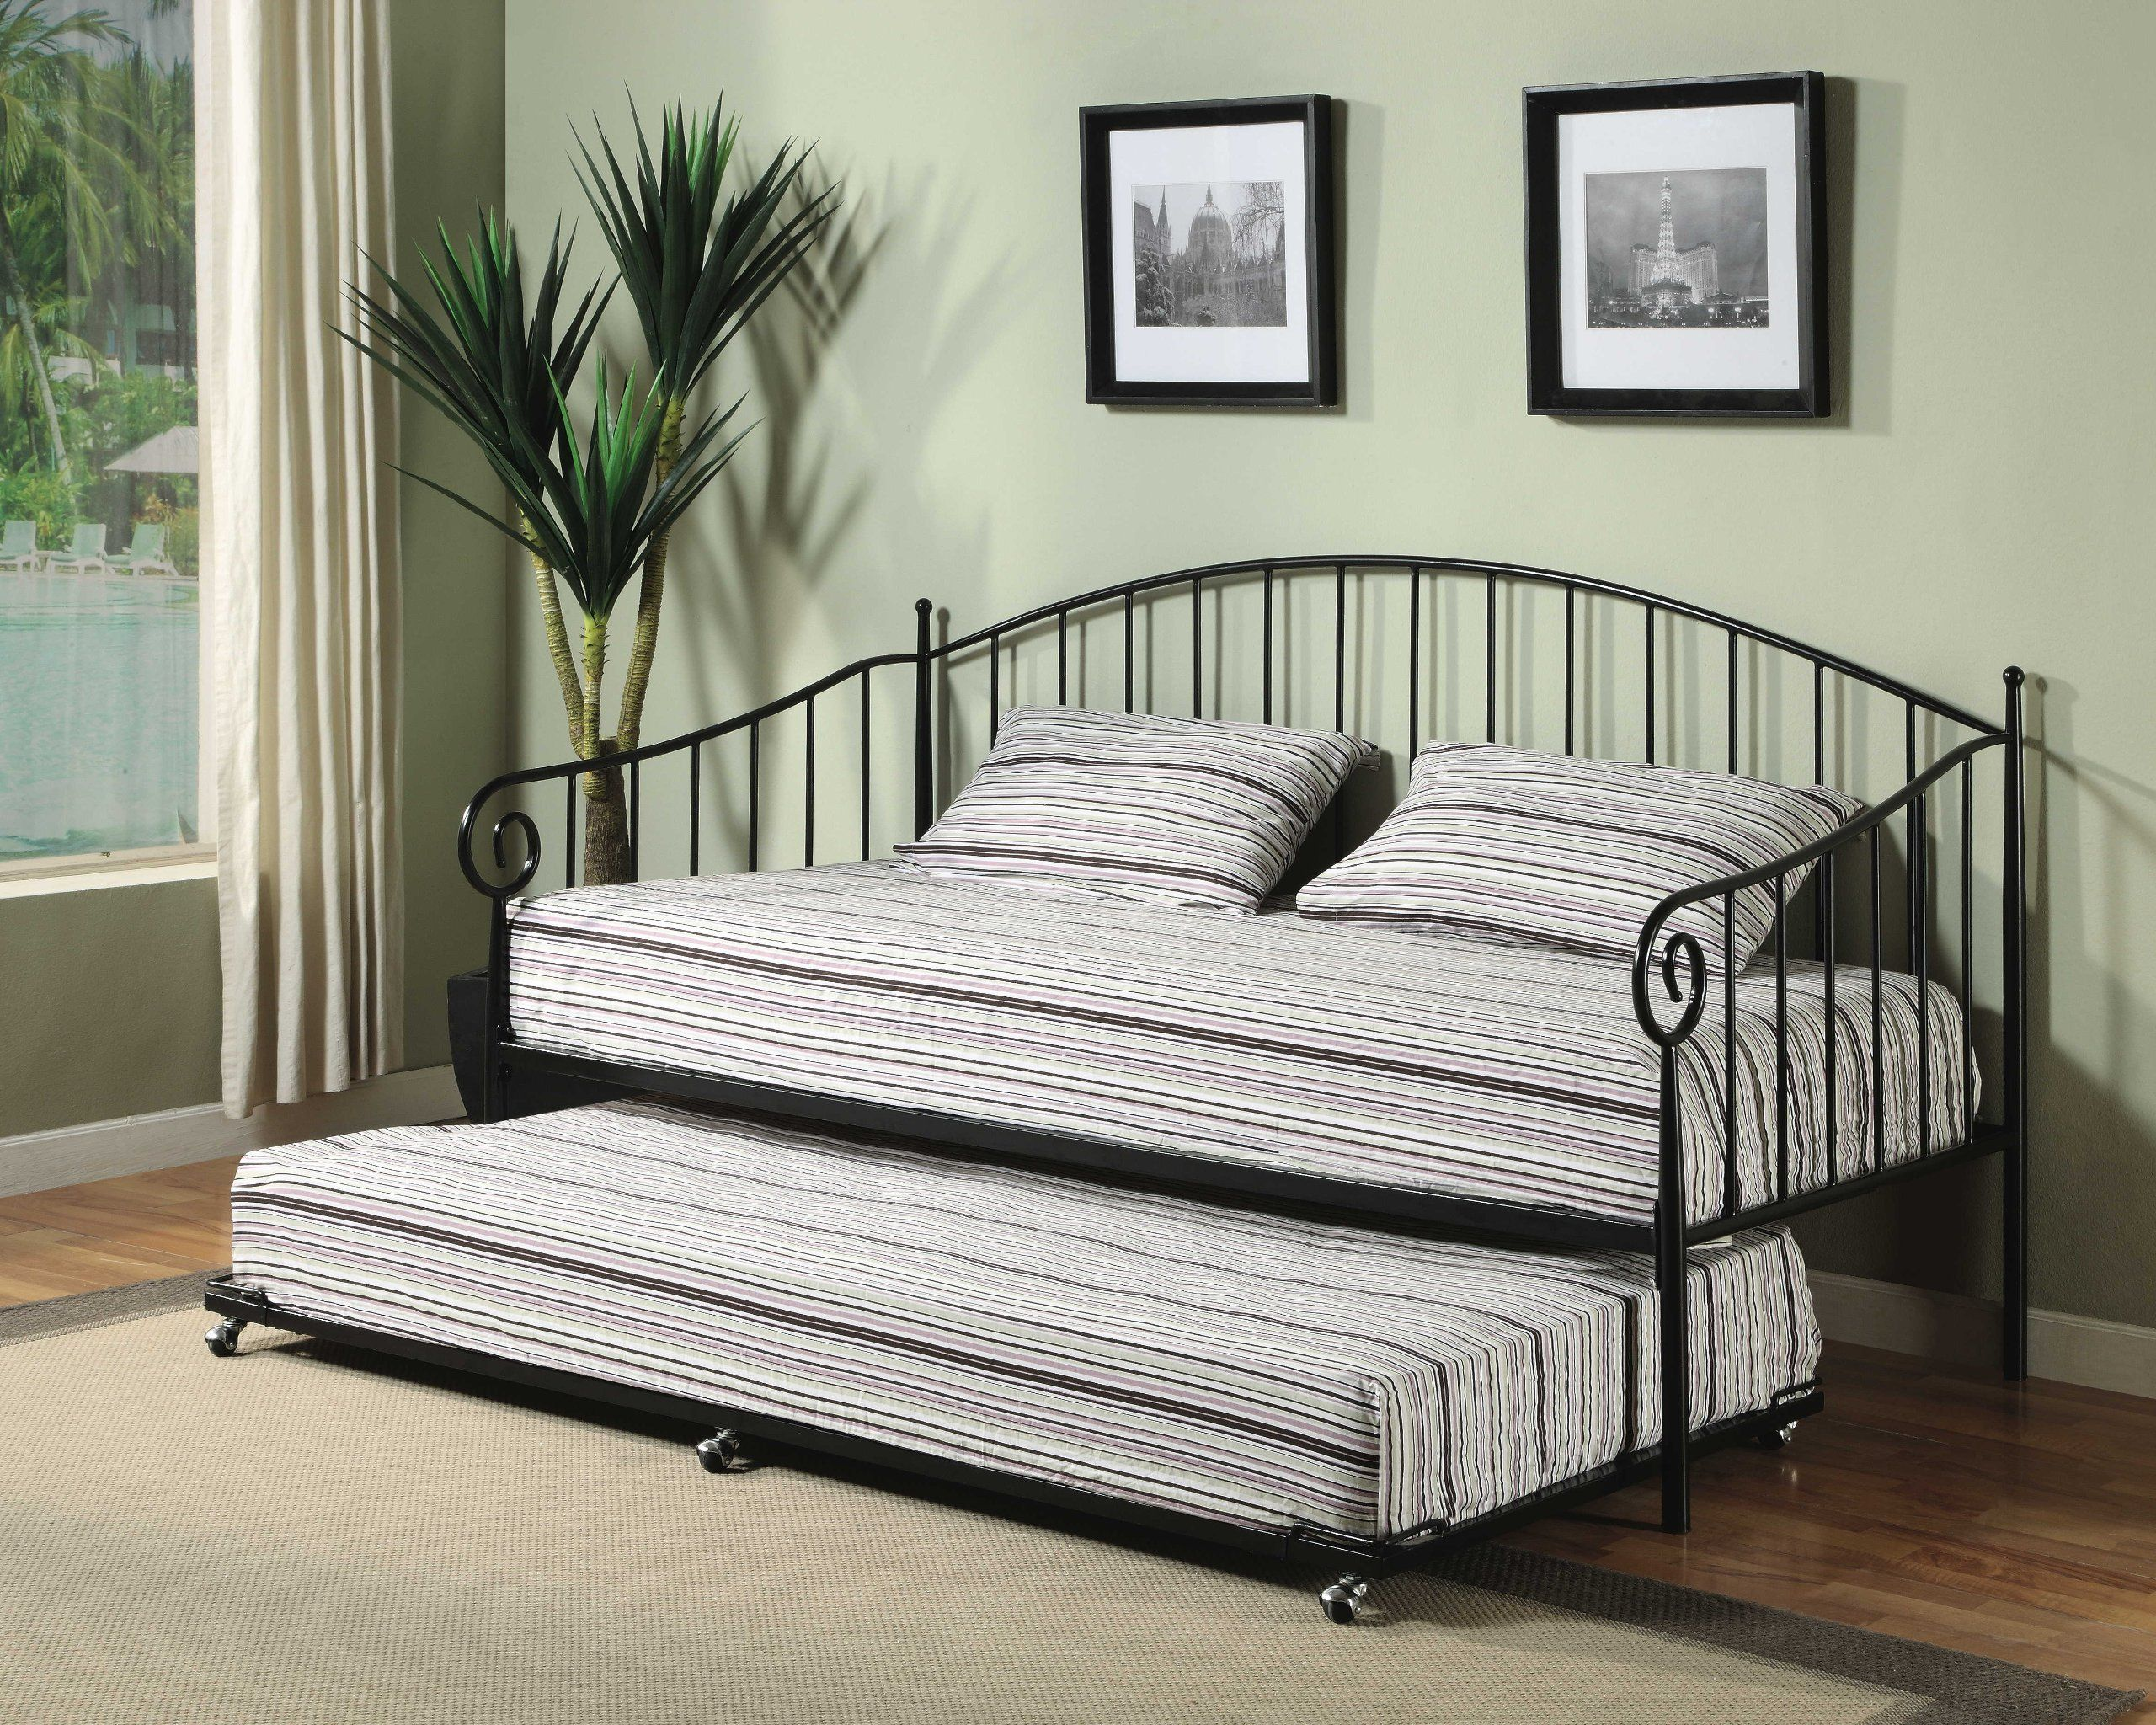 Amazon Com Matt Black Metal Twin Size Day Bed Daybed Frame With Trundle Home Kitchen Metal Daybed Daybed Bedding Daybed Design